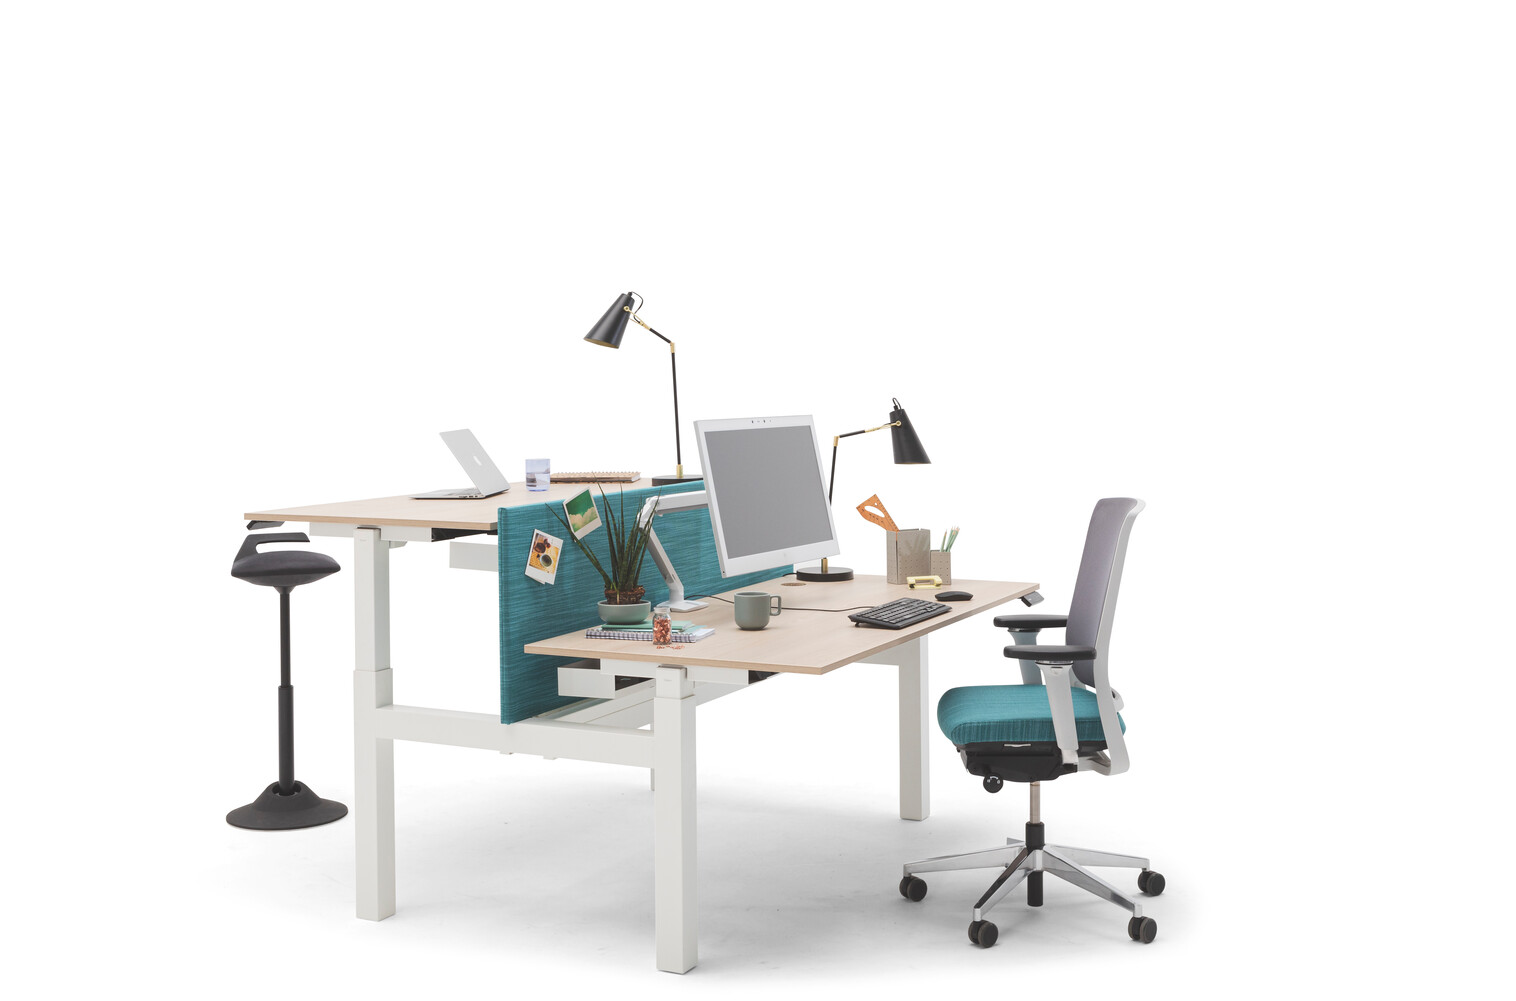 Gispen TMNL dual workstation 2 stage sit stand in white with beech tops and turquoise screen with Zinn office chair front left view